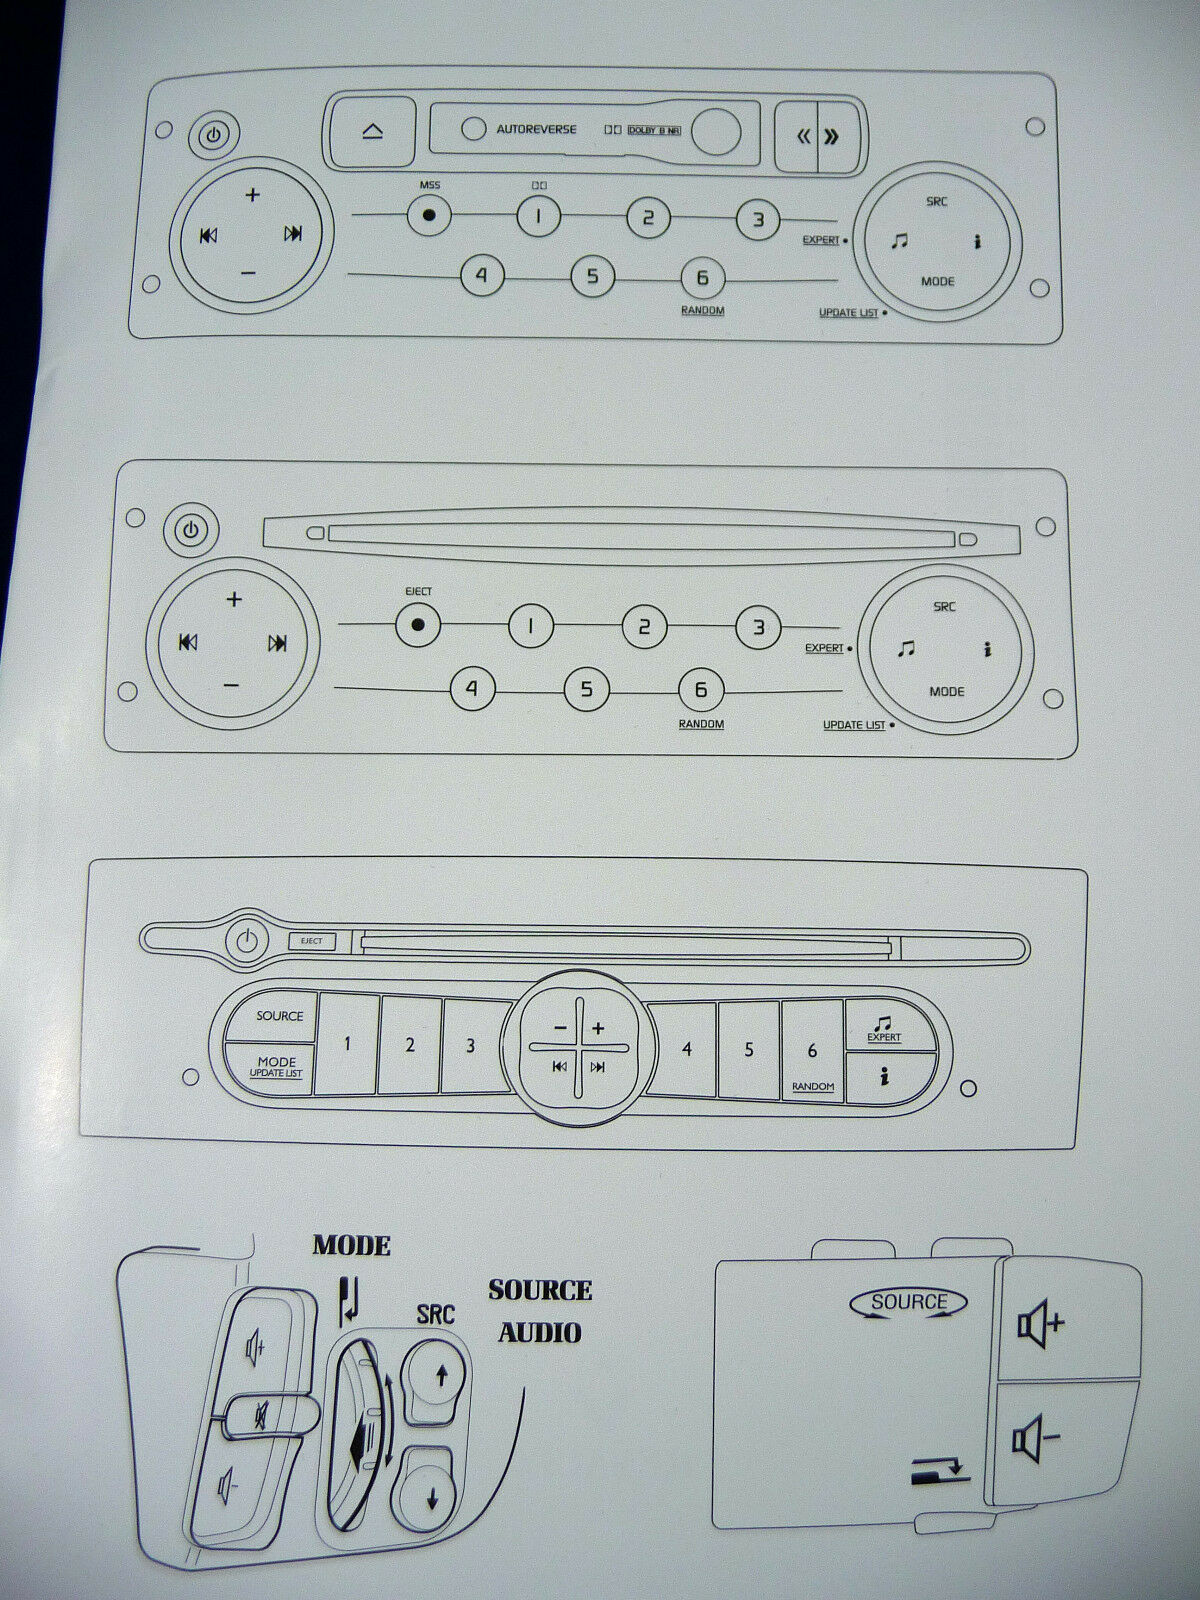 Renault Gamme Radiosat Head Unit Audio Radio Operating Manual Instruction  Book 1 of 1FREE Shipping ...